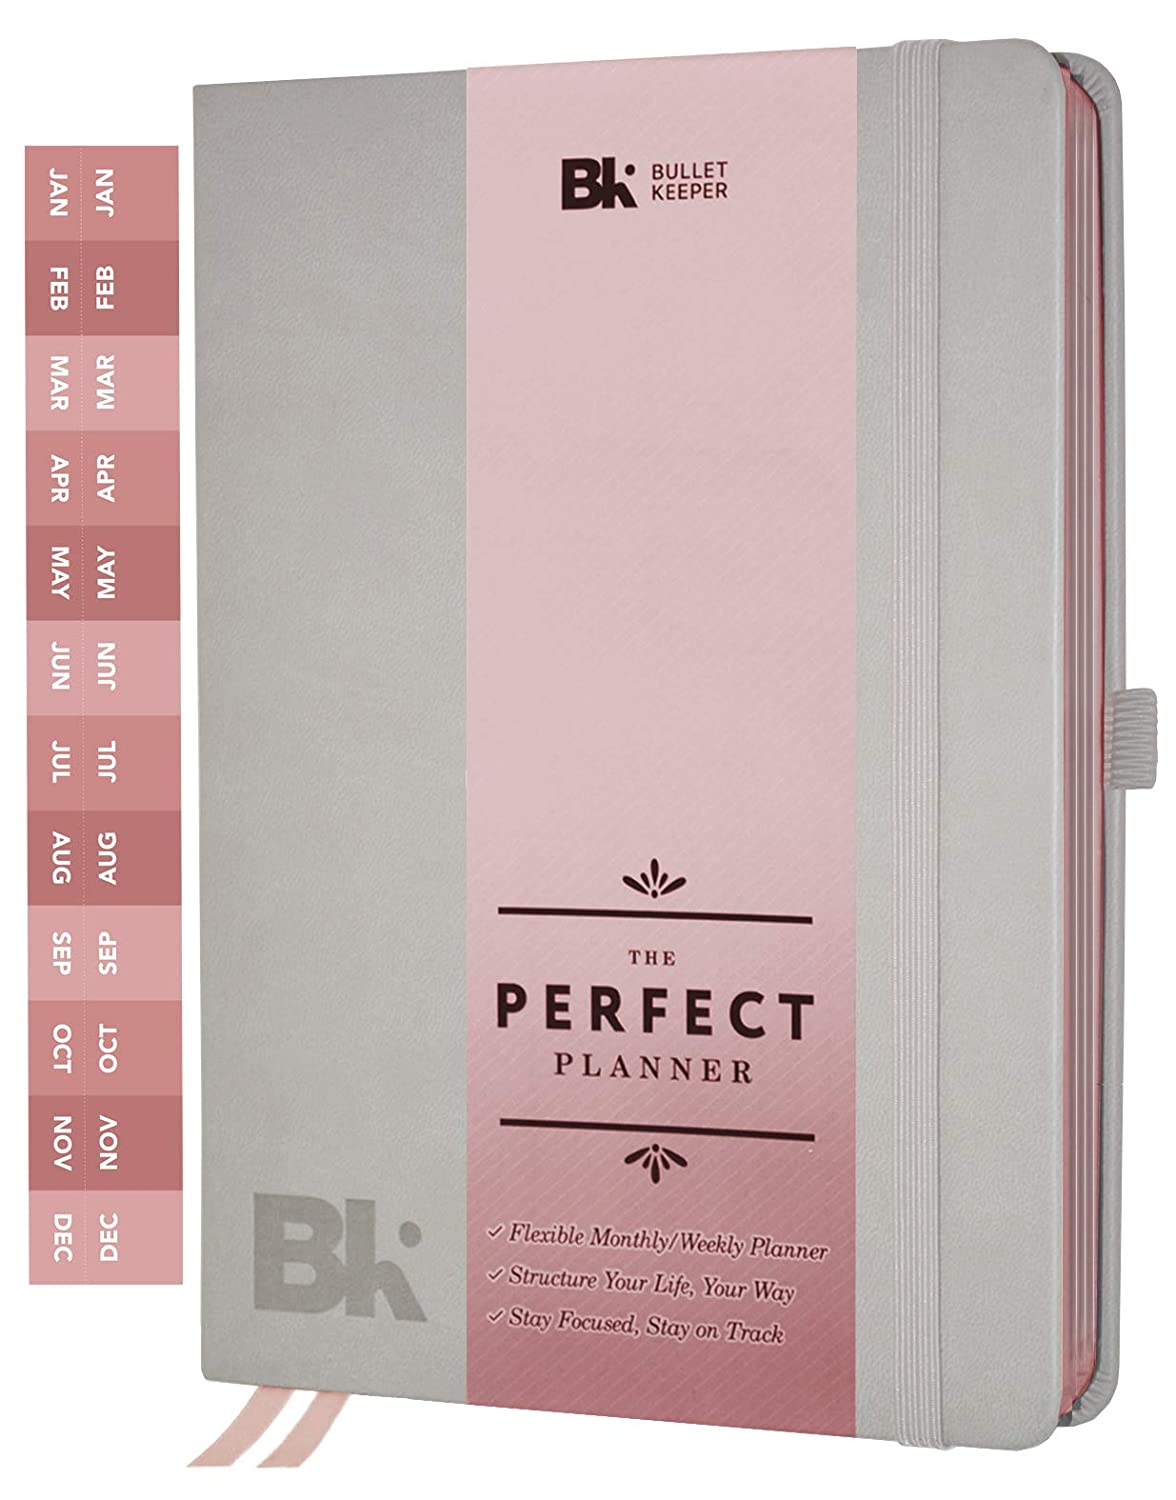 The Perfect Planner by BK. Undated Planner for 2019-20 with Weekly & Monthly Structures. Stickers Set Included. A5 (5.8 x 8.3) Gray Hardcover, Rose Gold Edges